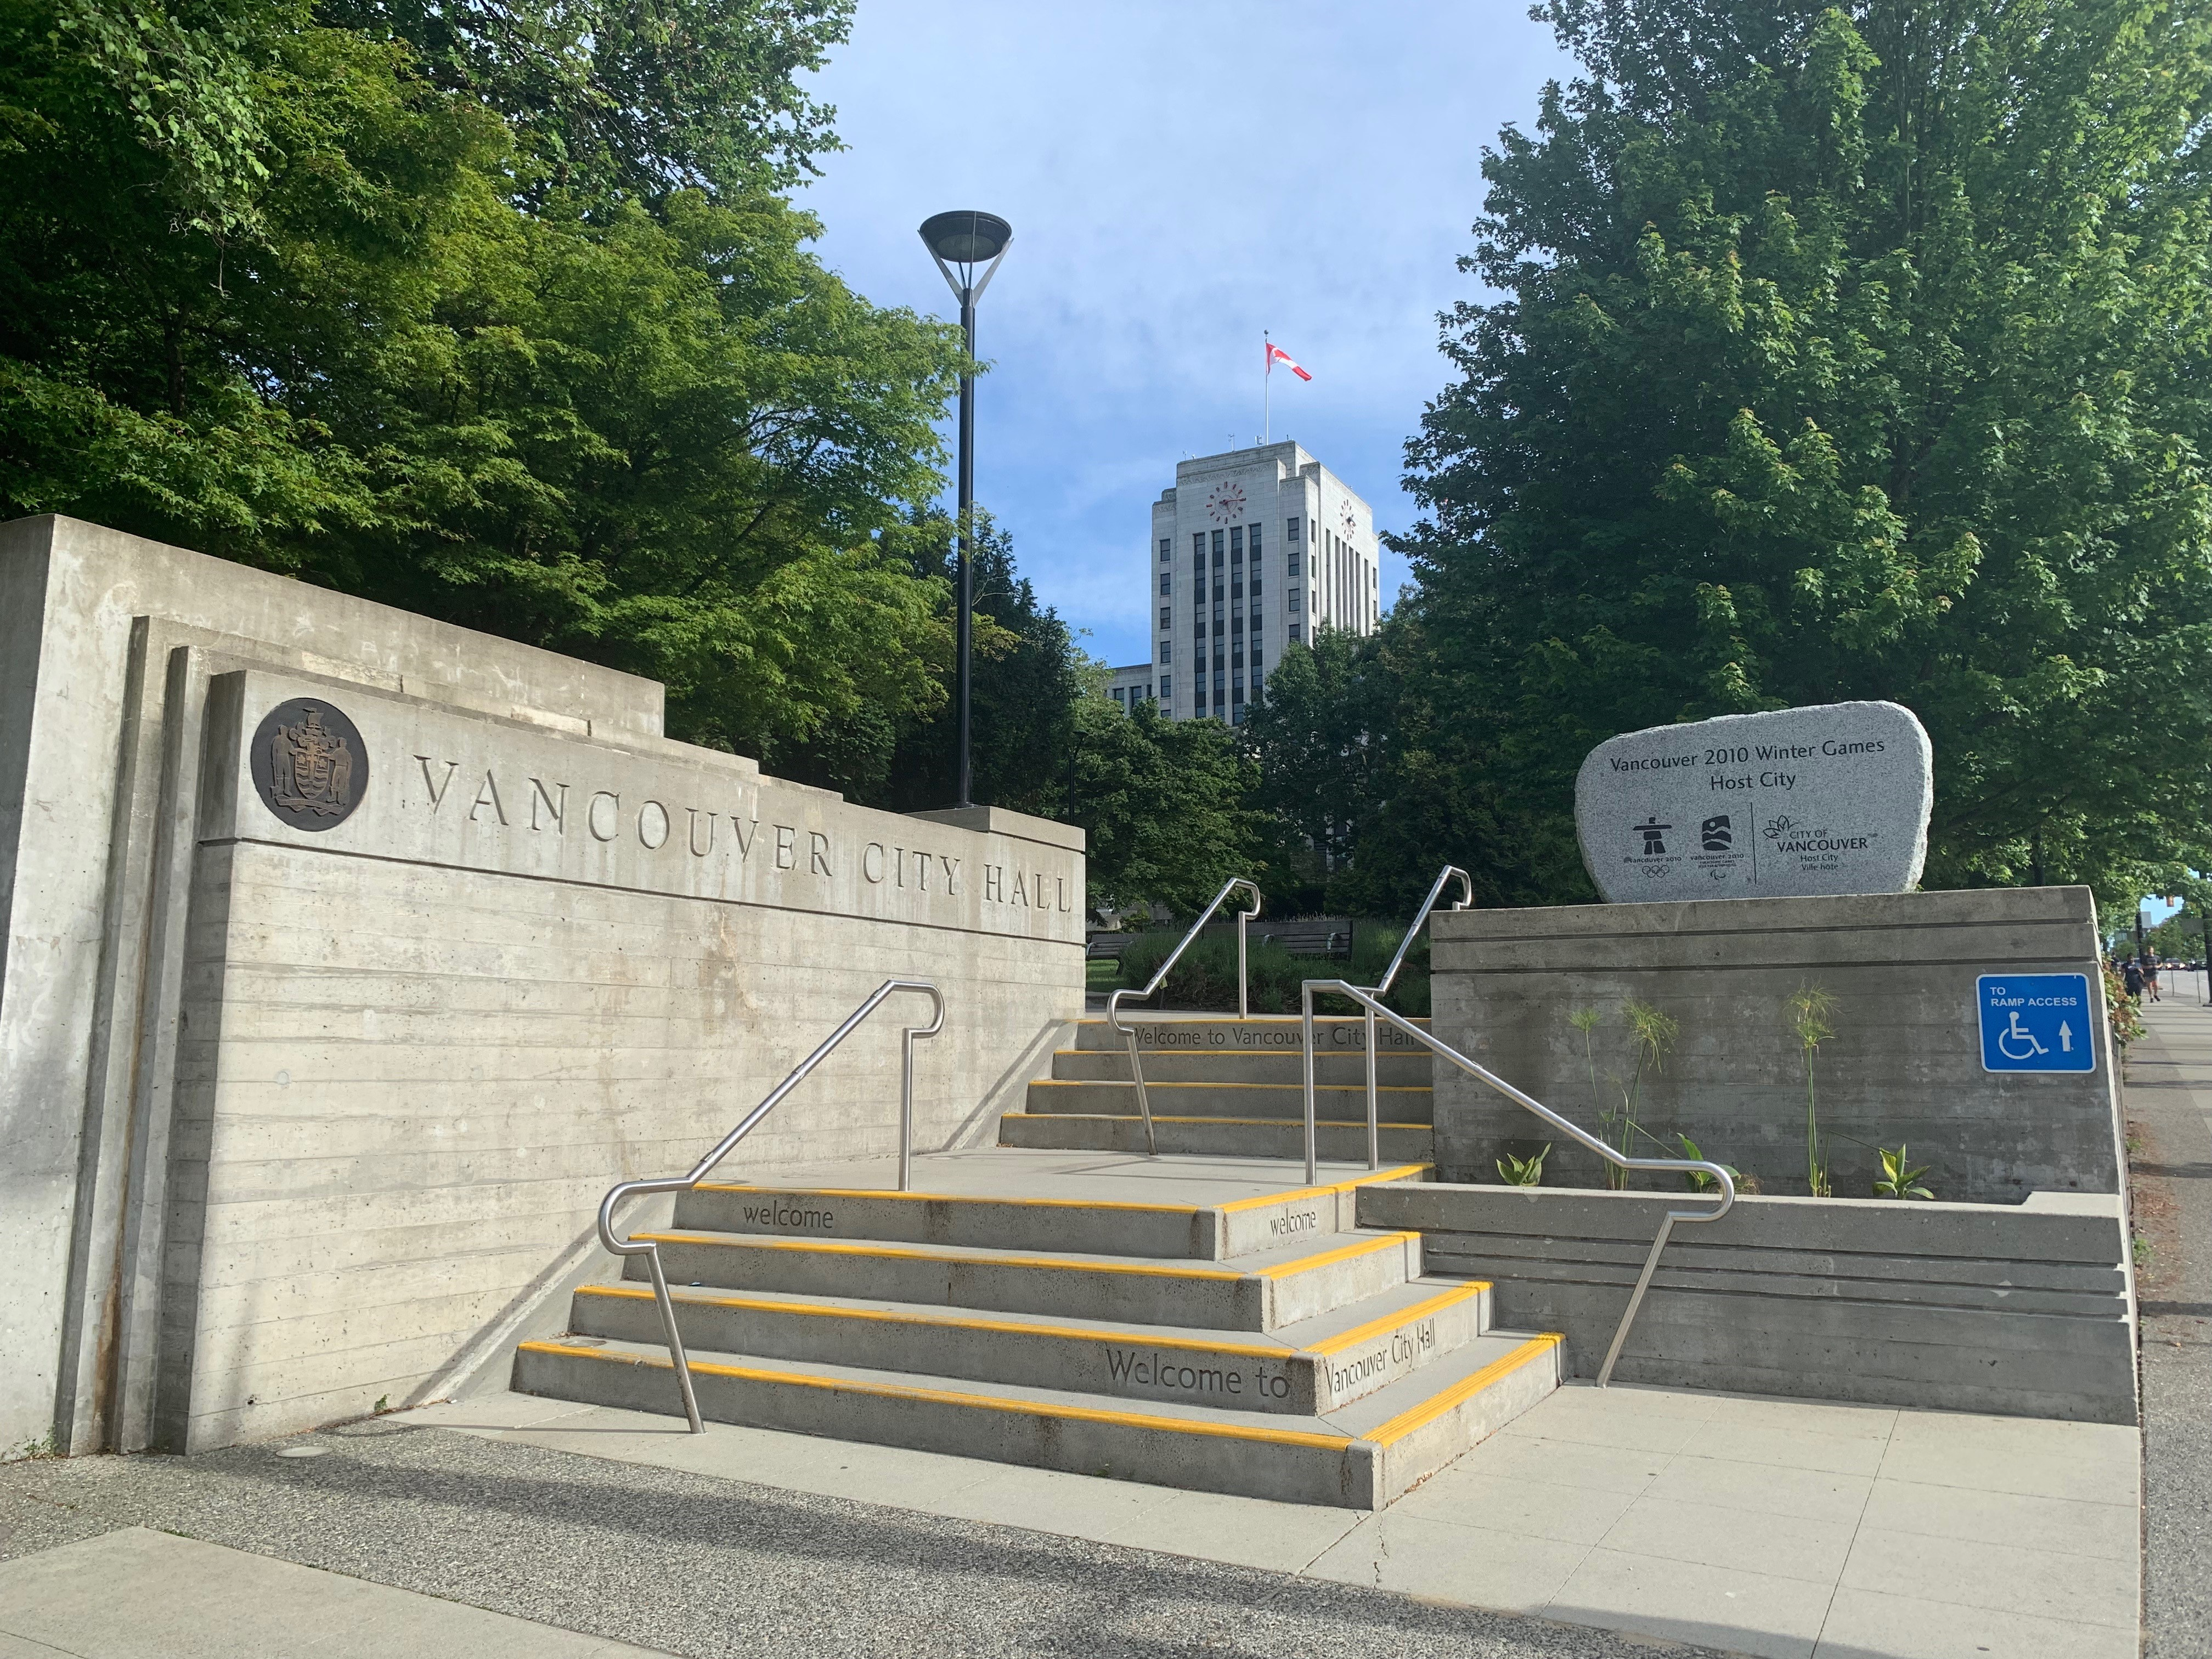 Push for affordable housing creating divide at Vancouver City Hall